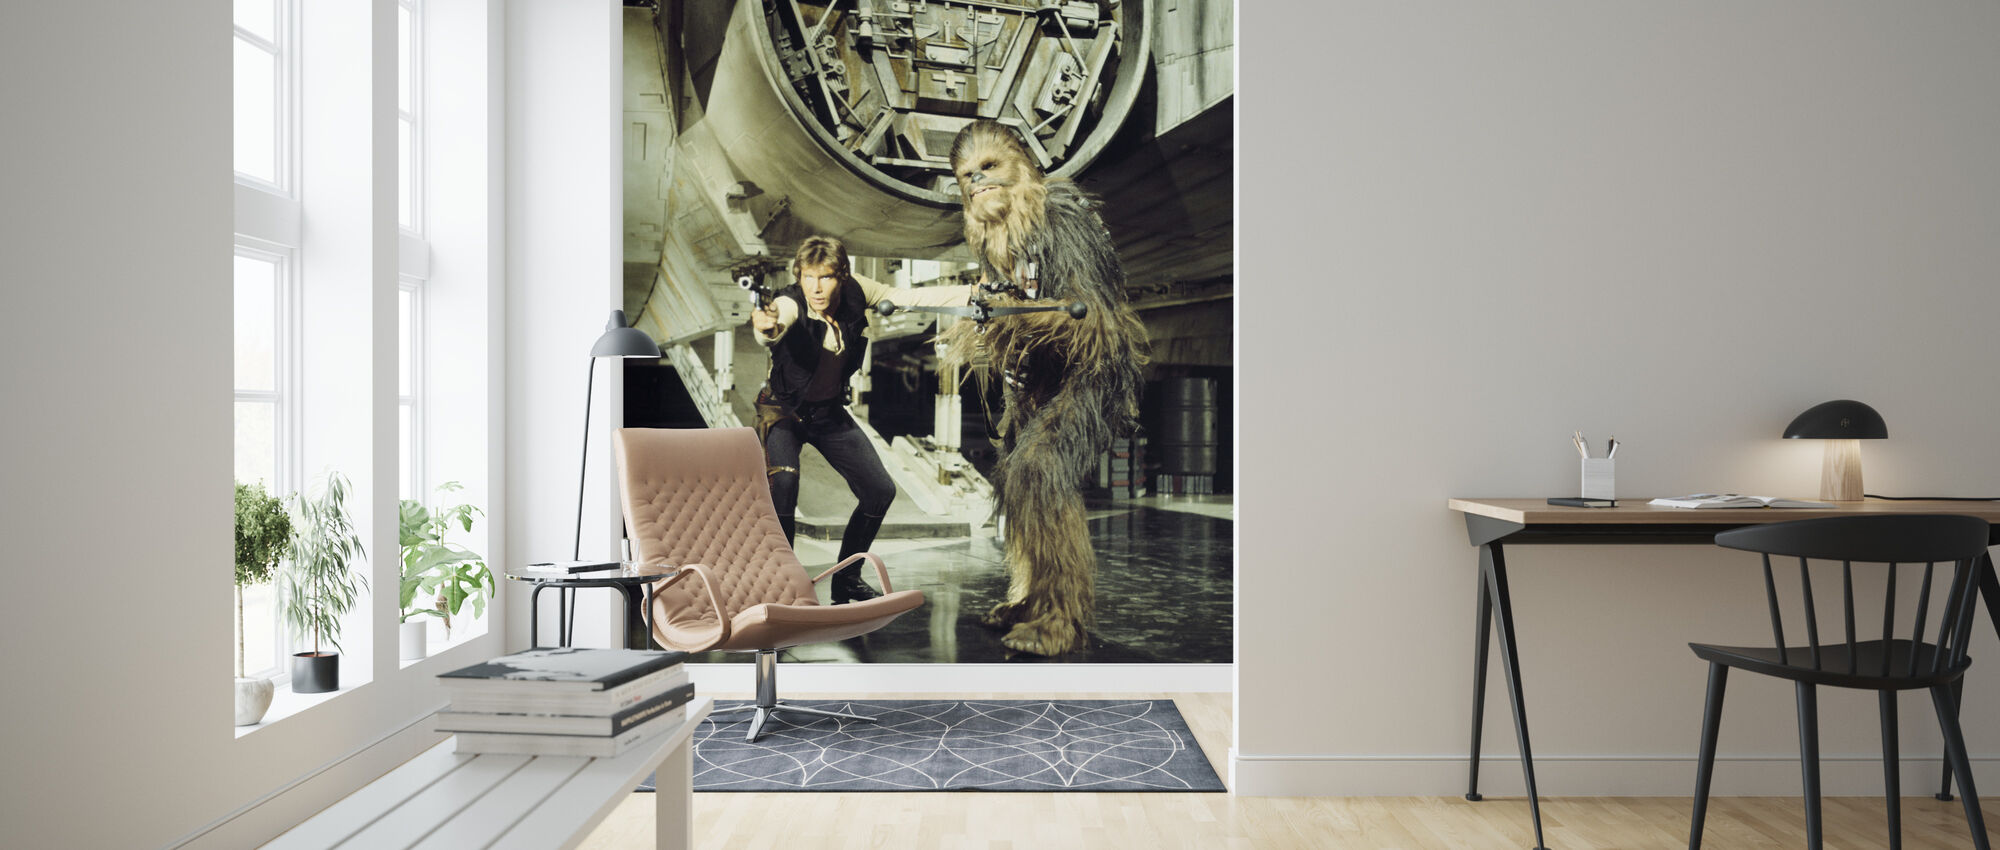 Star Wars - Han Solo og Chewbacca - Tapet - Stue